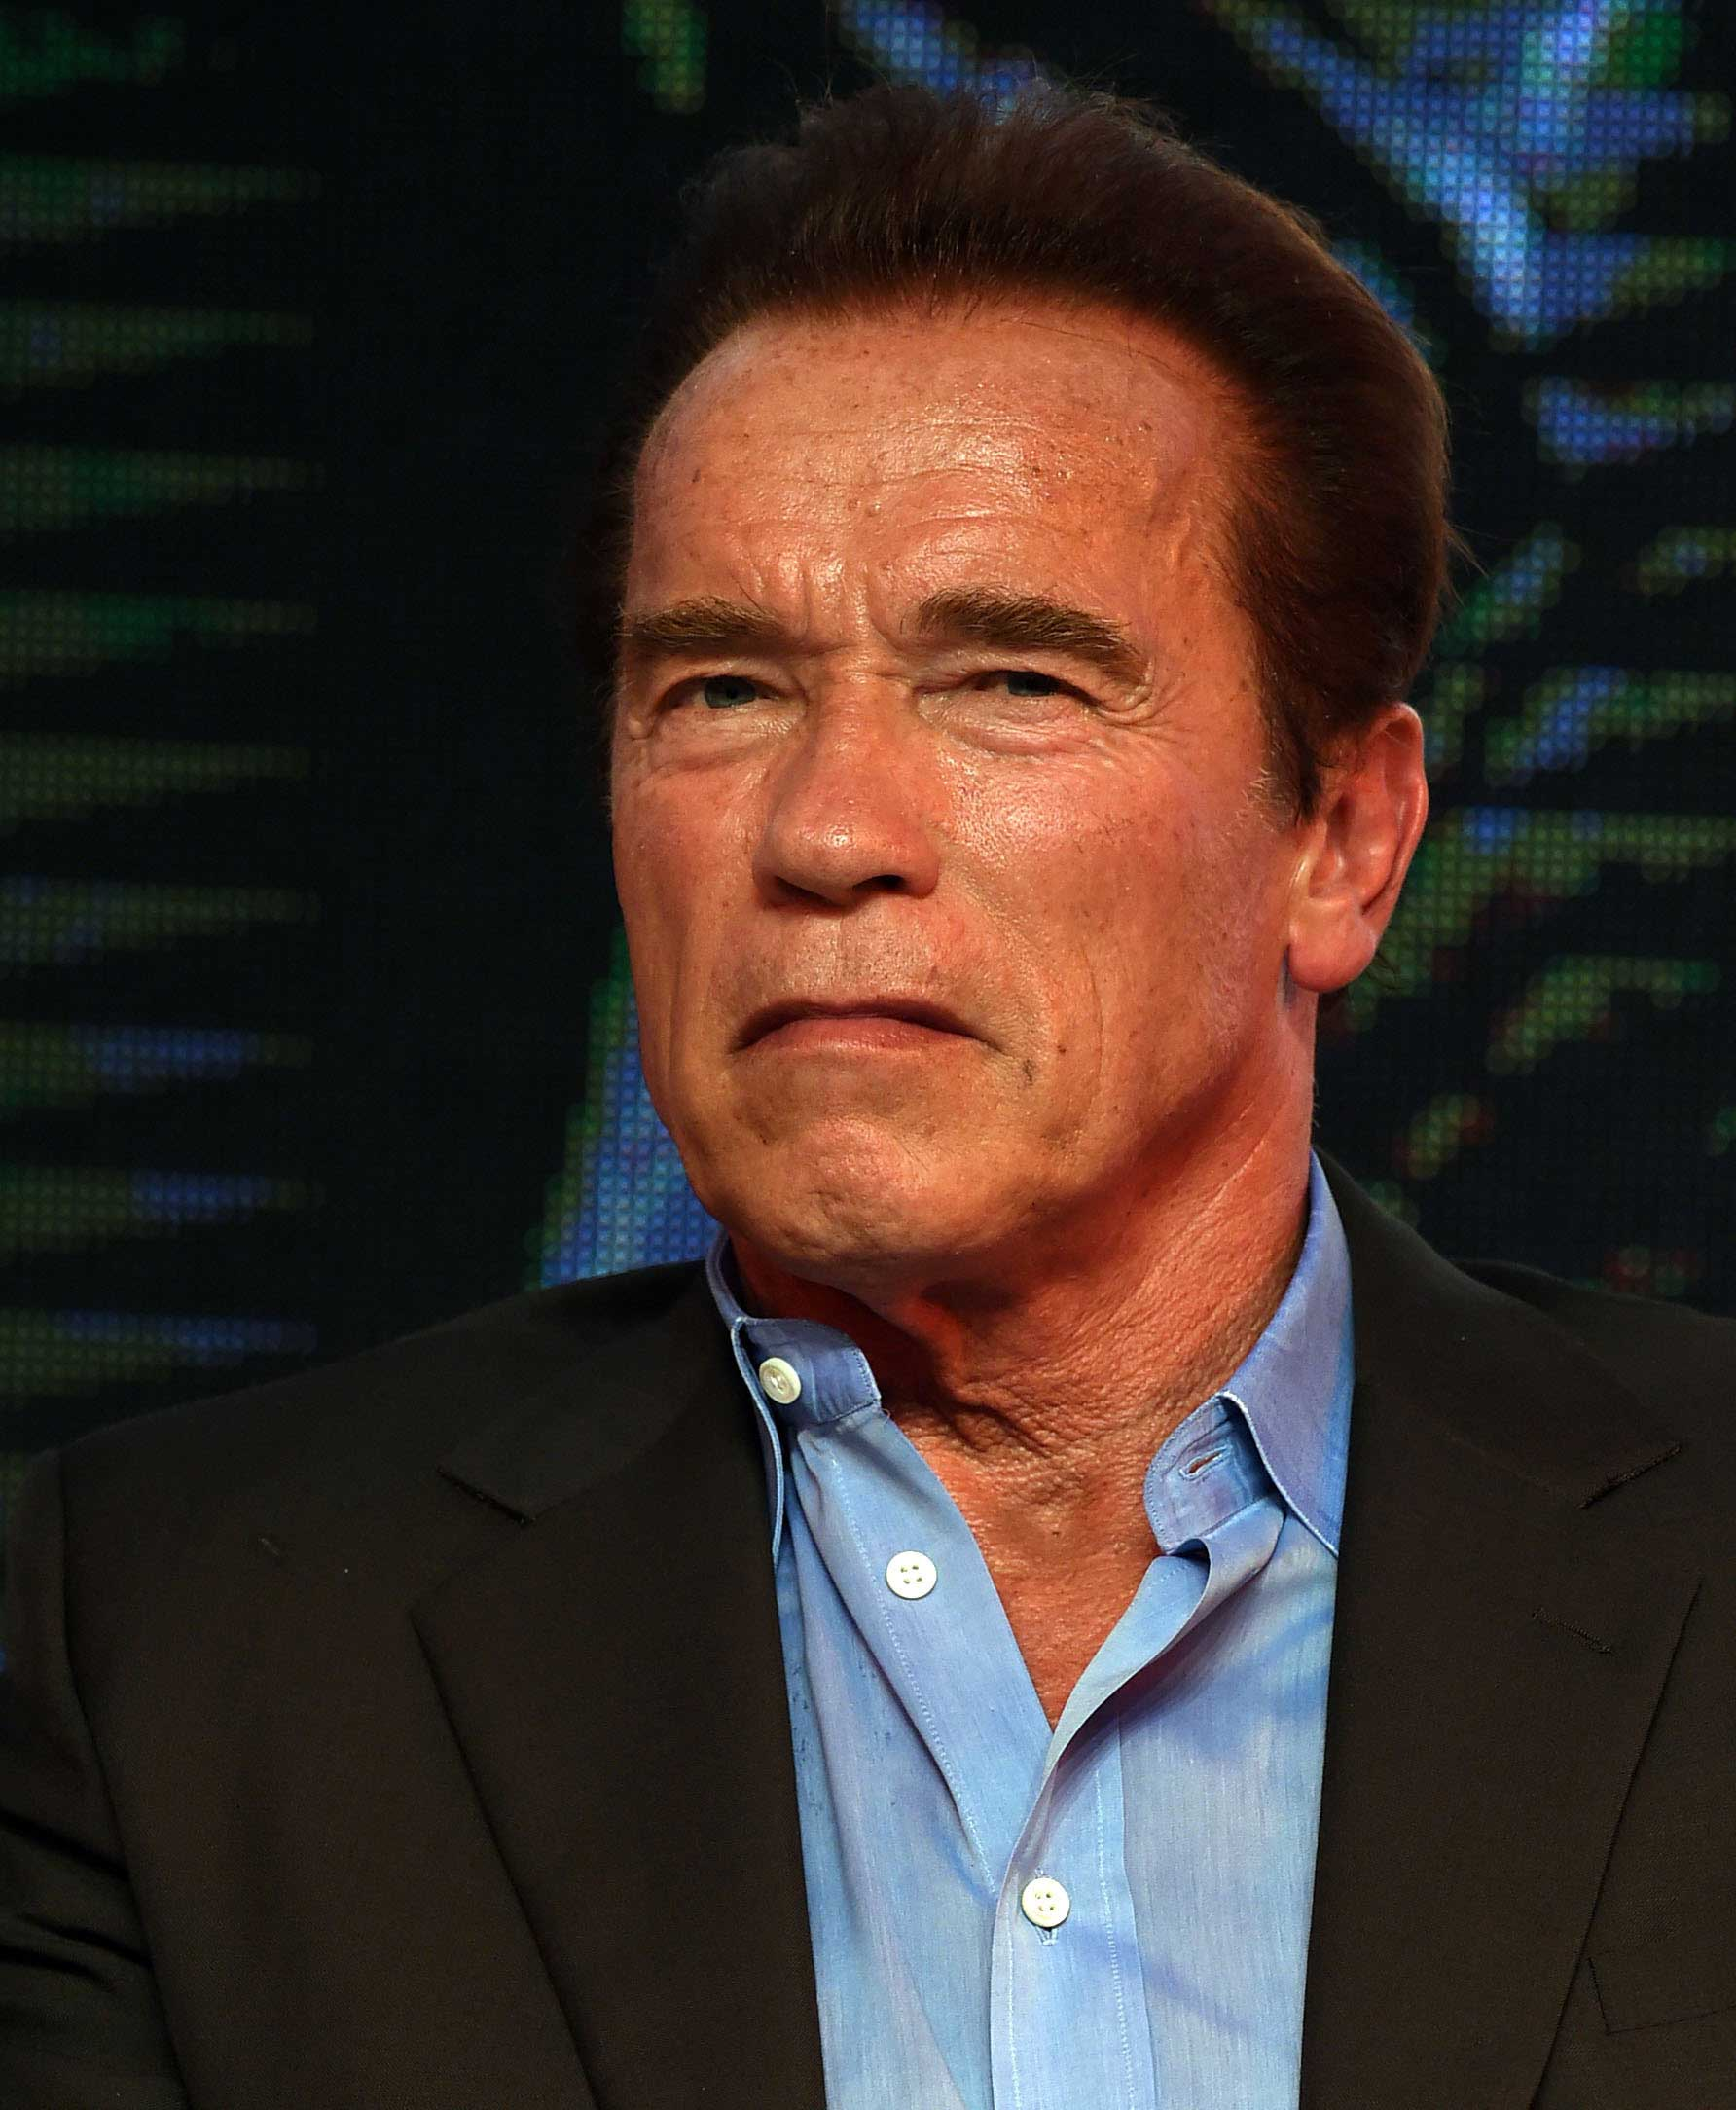 Actor Arnold Schwarzenegger attends a press conference of Alan Taylor's film  Terminator Genisys  on August 21, 2015 in Shanghai, China.